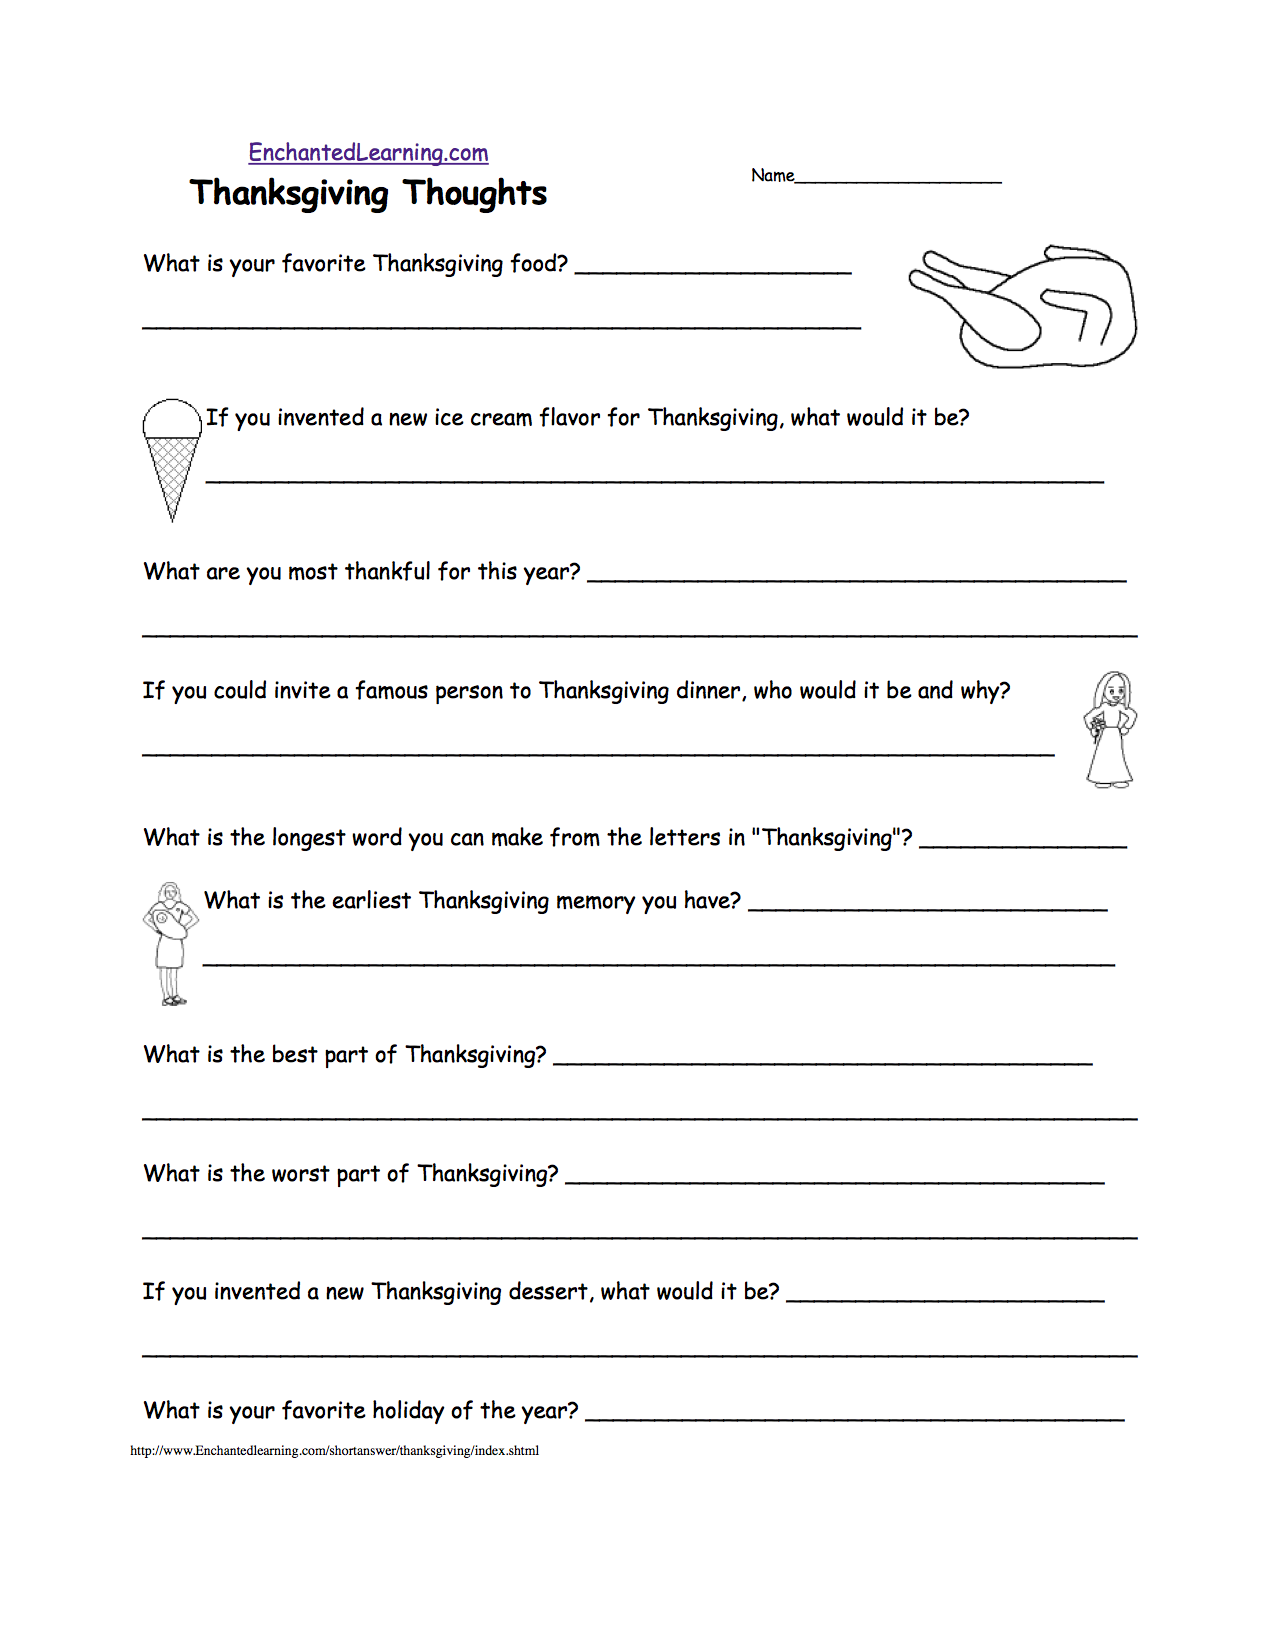 Printables School Worksheets To Print thanksgiving crafts worksheets and activities thanksgiving